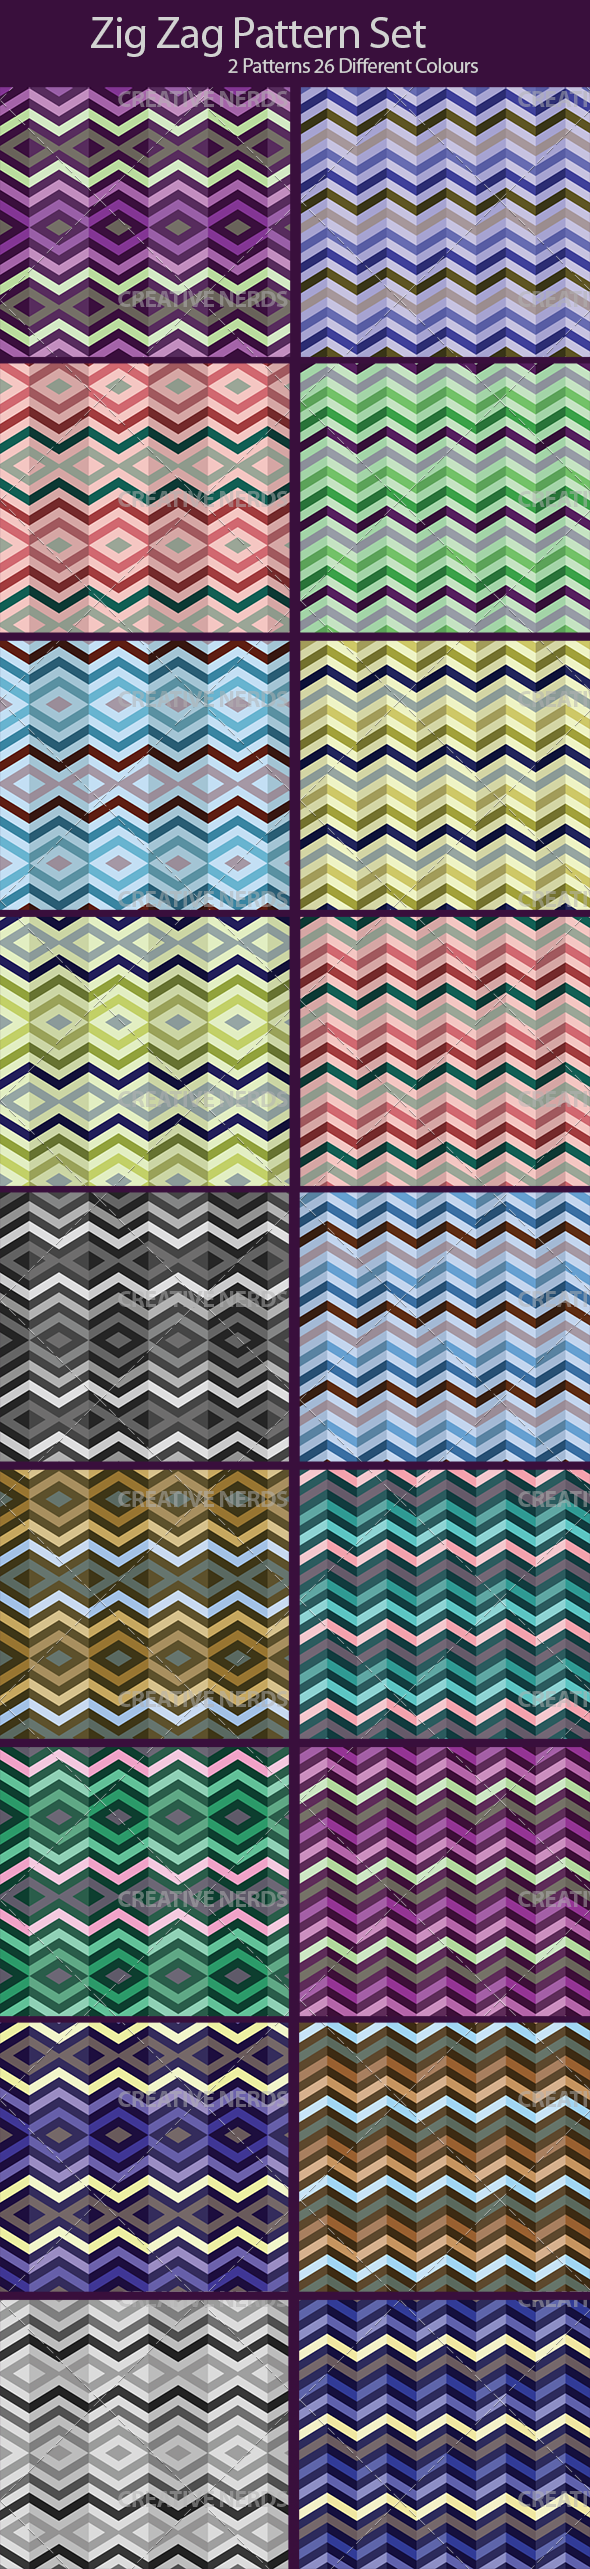 zig zag pattern set preview 26 Zig Zag Seamless Vector Pattern Set